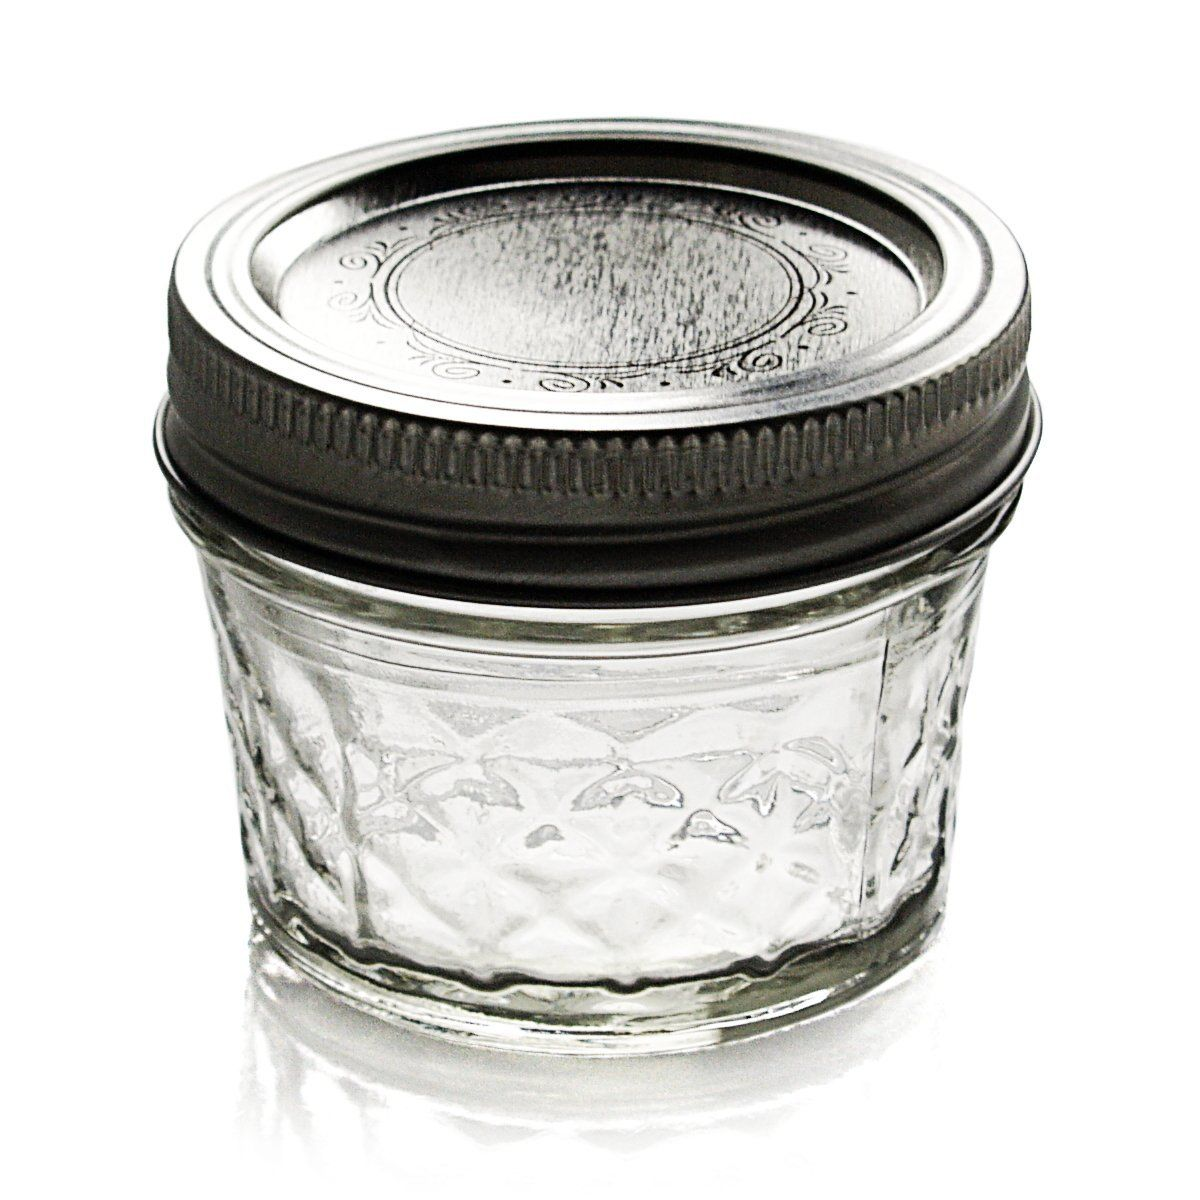 Mason Jar Buying Guide | Jelly jars, Body butter and Gift : quilted jam jars - Adamdwight.com